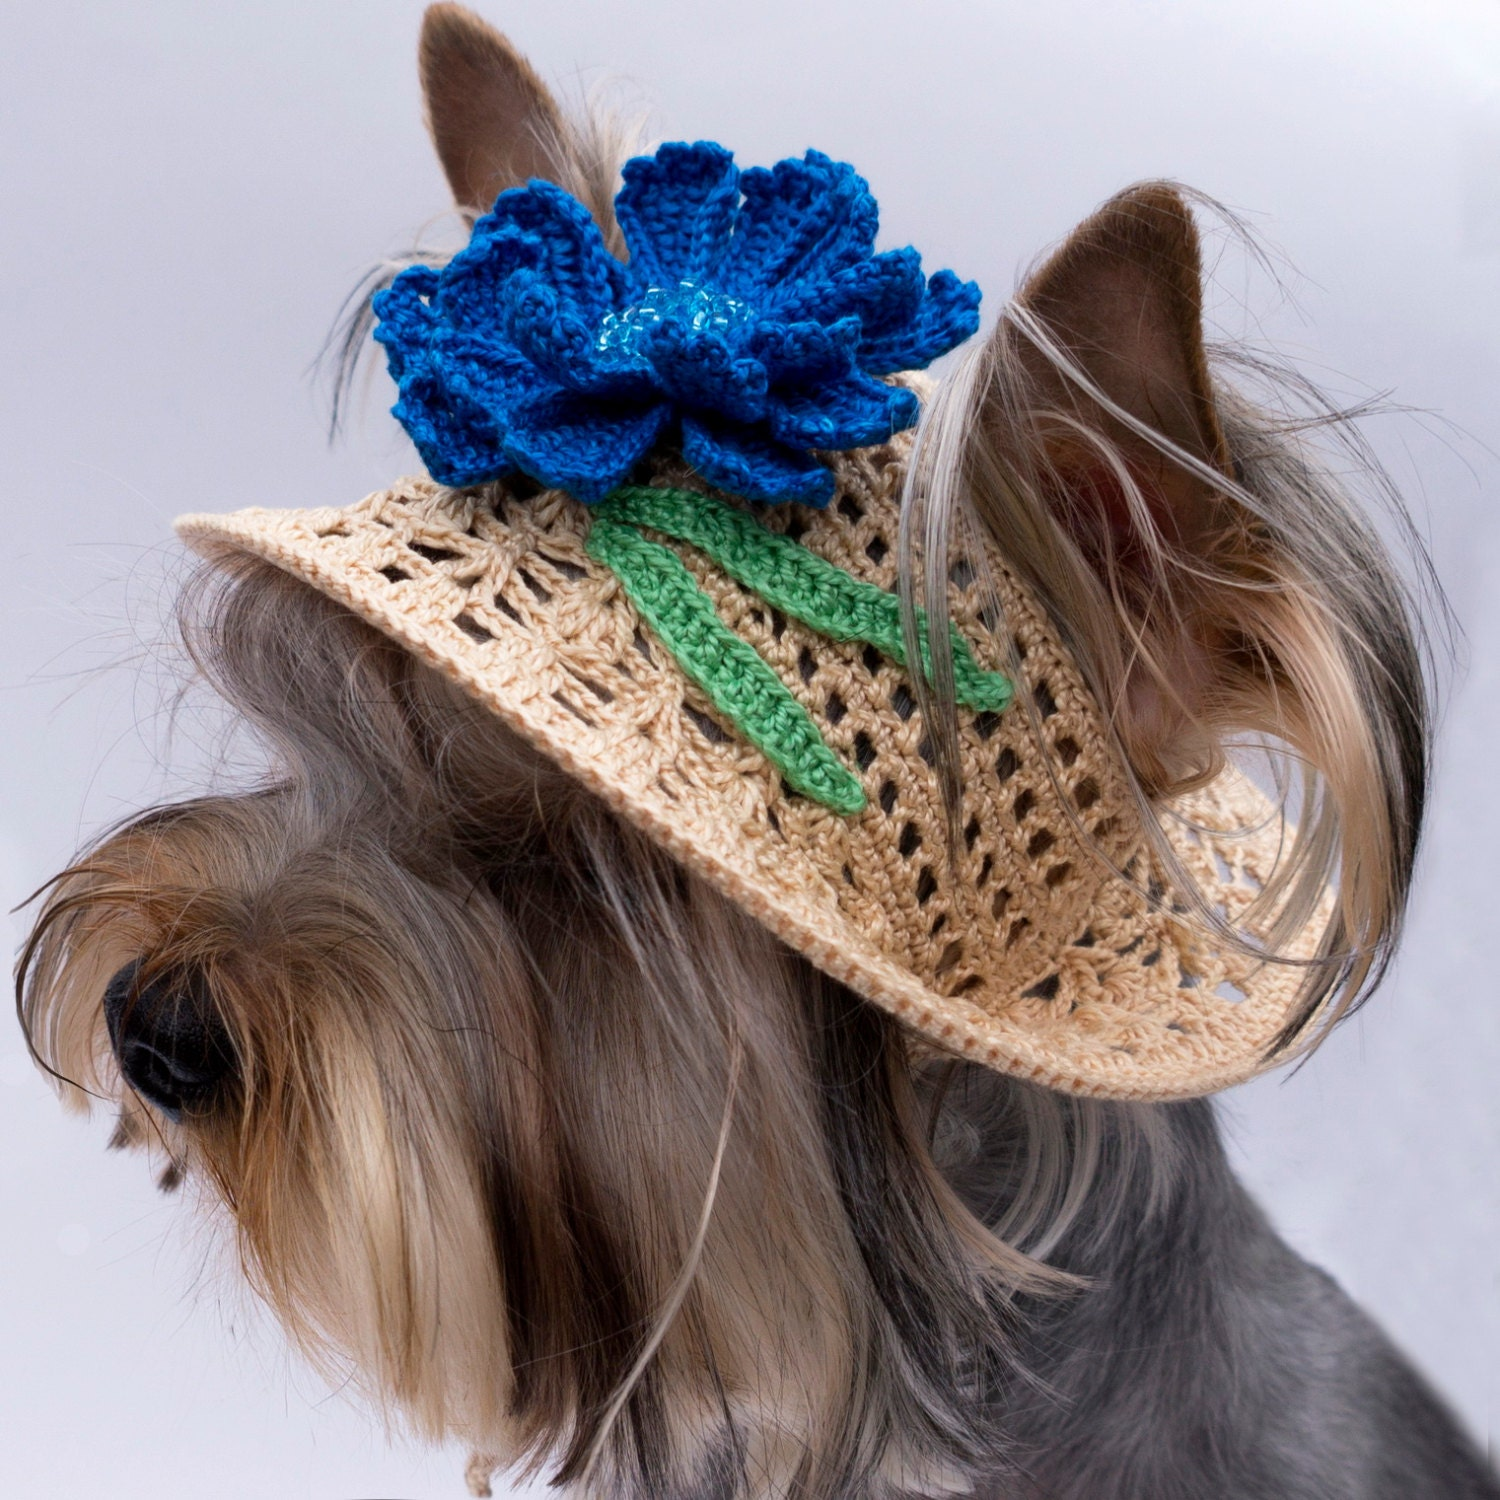 Crochet Pattern Dog Hat Free : Hat for Dog Cornflower Crochet Dog Hat Doggie